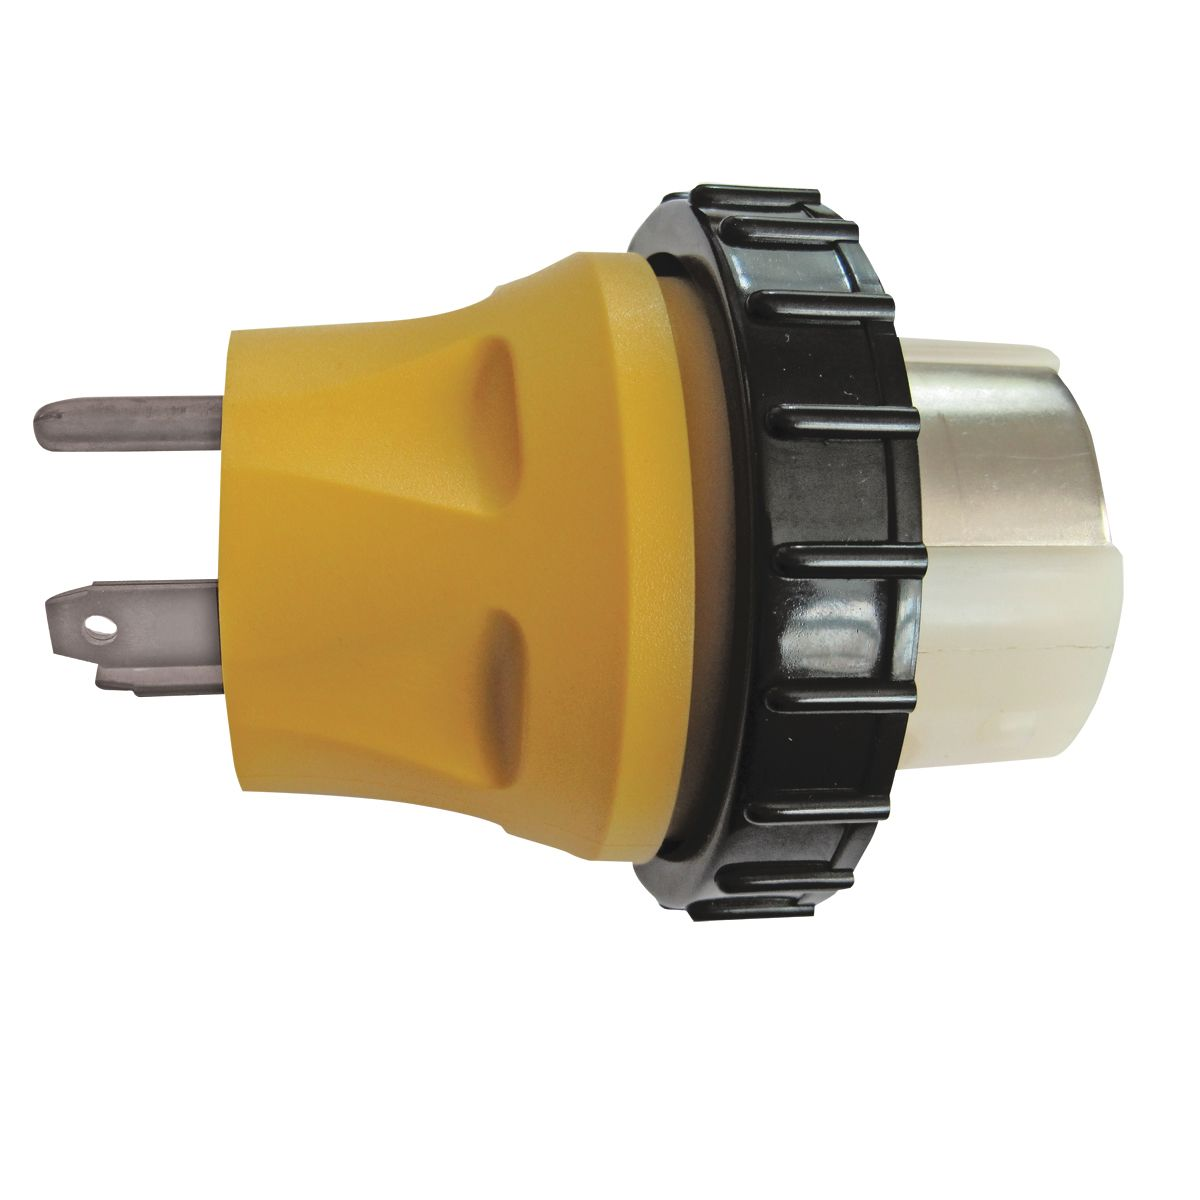 16 00597 voltec power cord adapter 30 amp to 50 amp